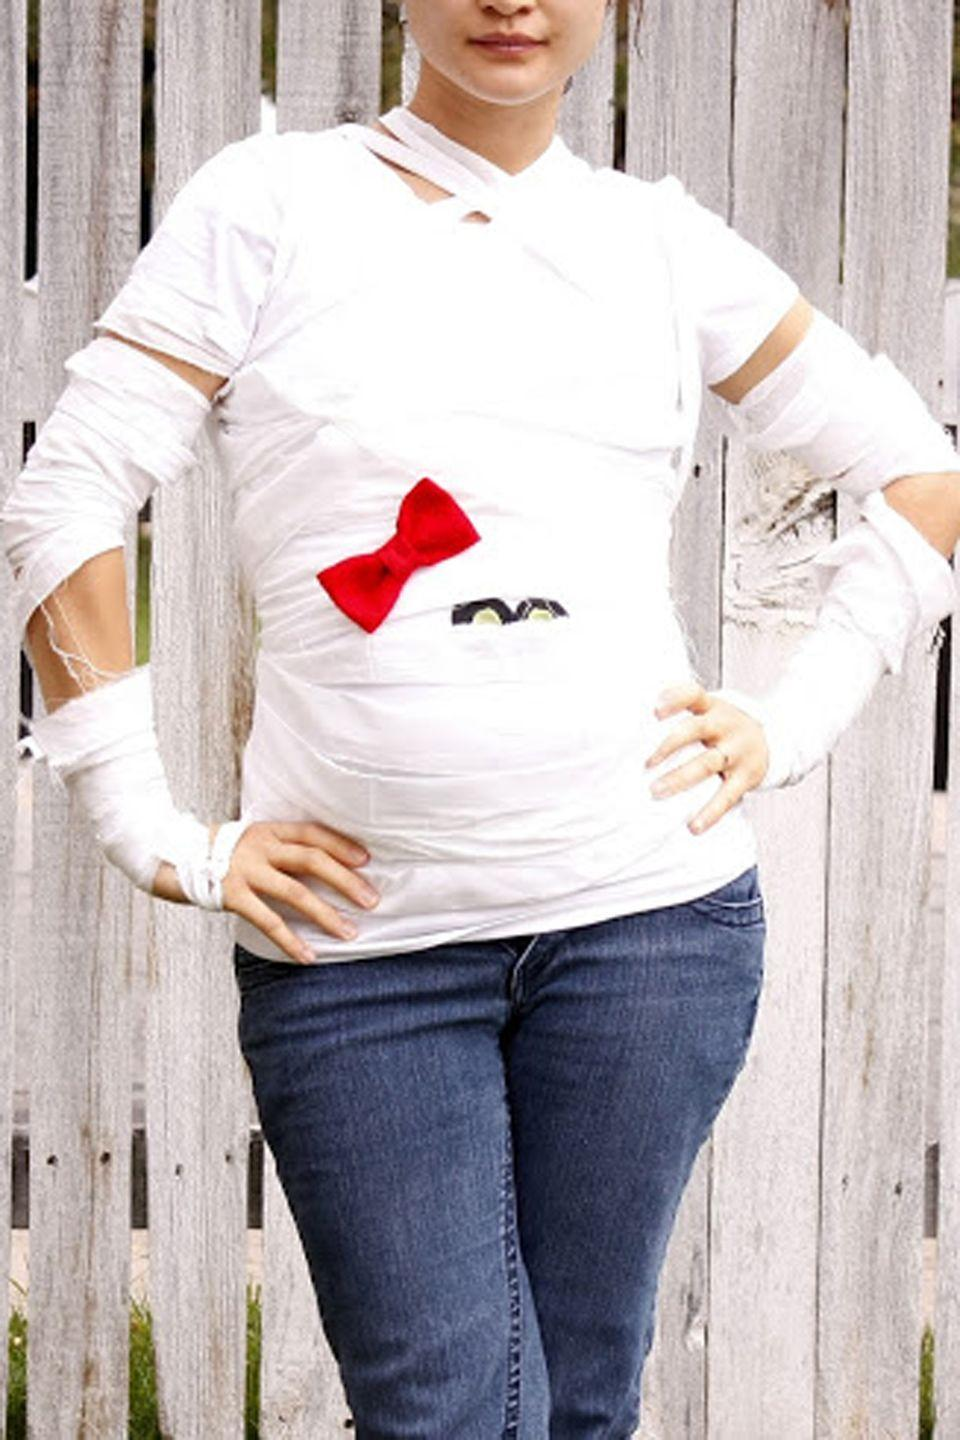 """<p>The perfect costume for a soon-to-be <em>mummy. </em></p><p><strong>Get the tutorial at <a href=""""http://www.deliacreates.com/this-looked-much-better-in-my-head/"""" rel=""""nofollow noopener"""" target=""""_blank"""" data-ylk=""""slk:Delia Creates"""" class=""""link rapid-noclick-resp"""">Delia Creates</a>.</strong></p><p><a class=""""link rapid-noclick-resp"""" href=""""https://www.amazon.com/Crafty-Cuts-2-Yards-Muslin-Fabric/dp/B004FEEXDW?tag=syn-yahoo-20&ascsubtag=%5Bartid%7C10050.g.4972%5Bsrc%7Cyahoo-us"""" rel=""""nofollow noopener"""" target=""""_blank"""" data-ylk=""""slk:SHOP MUSLIN"""">SHOP MUSLIN</a> </p>"""